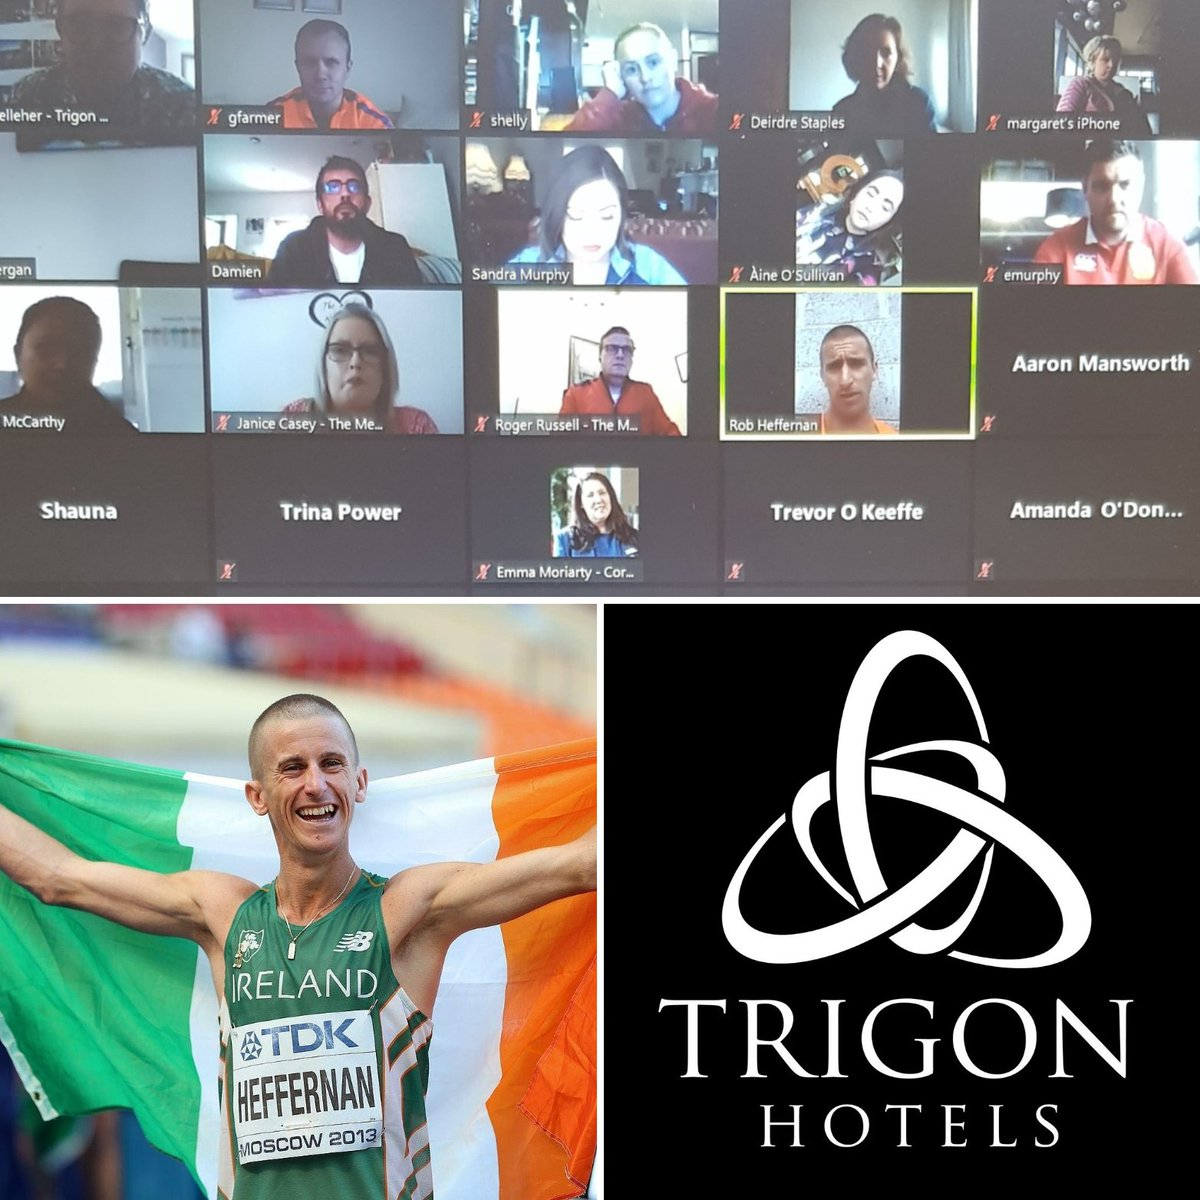 Thank you @sandramurphy999 of @TrigonHotels for organising a Health and Wellbeing guest speaker in @RM_Heffernan who spoke to the team this afternoon sharing his advice and life experiences. #themetropolehotel #corkinternationalhotel #corkairporthotel #wearetrigon https://t.co/m7rq6zNLL5